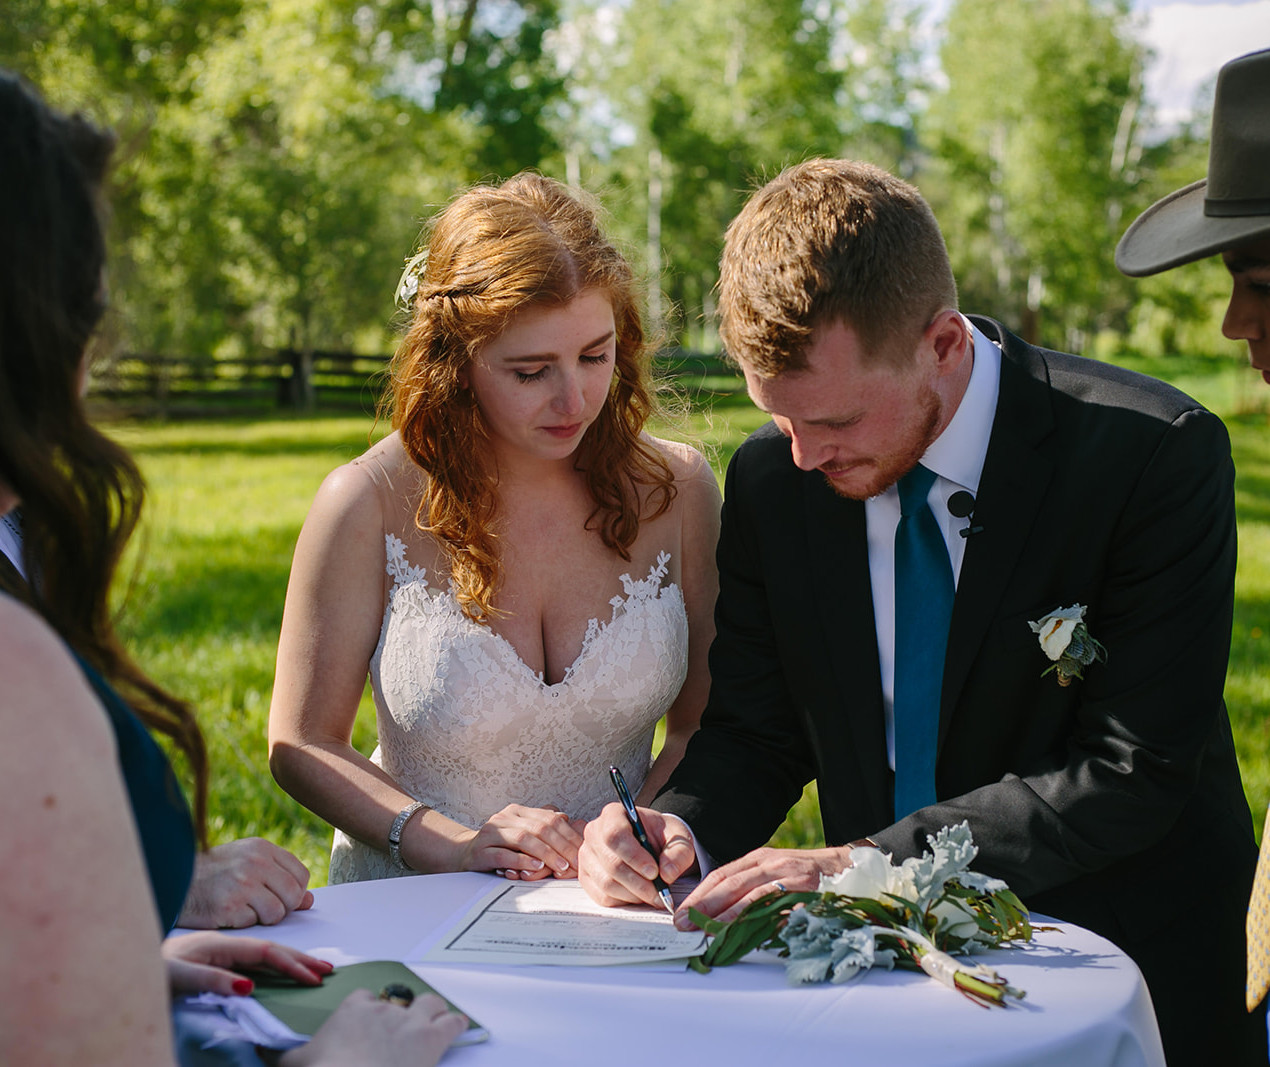 Outdoor weddings don't just happen, they are planned! Rustic Colorado Outdoor Wedding. Barn Wedding at a private home.